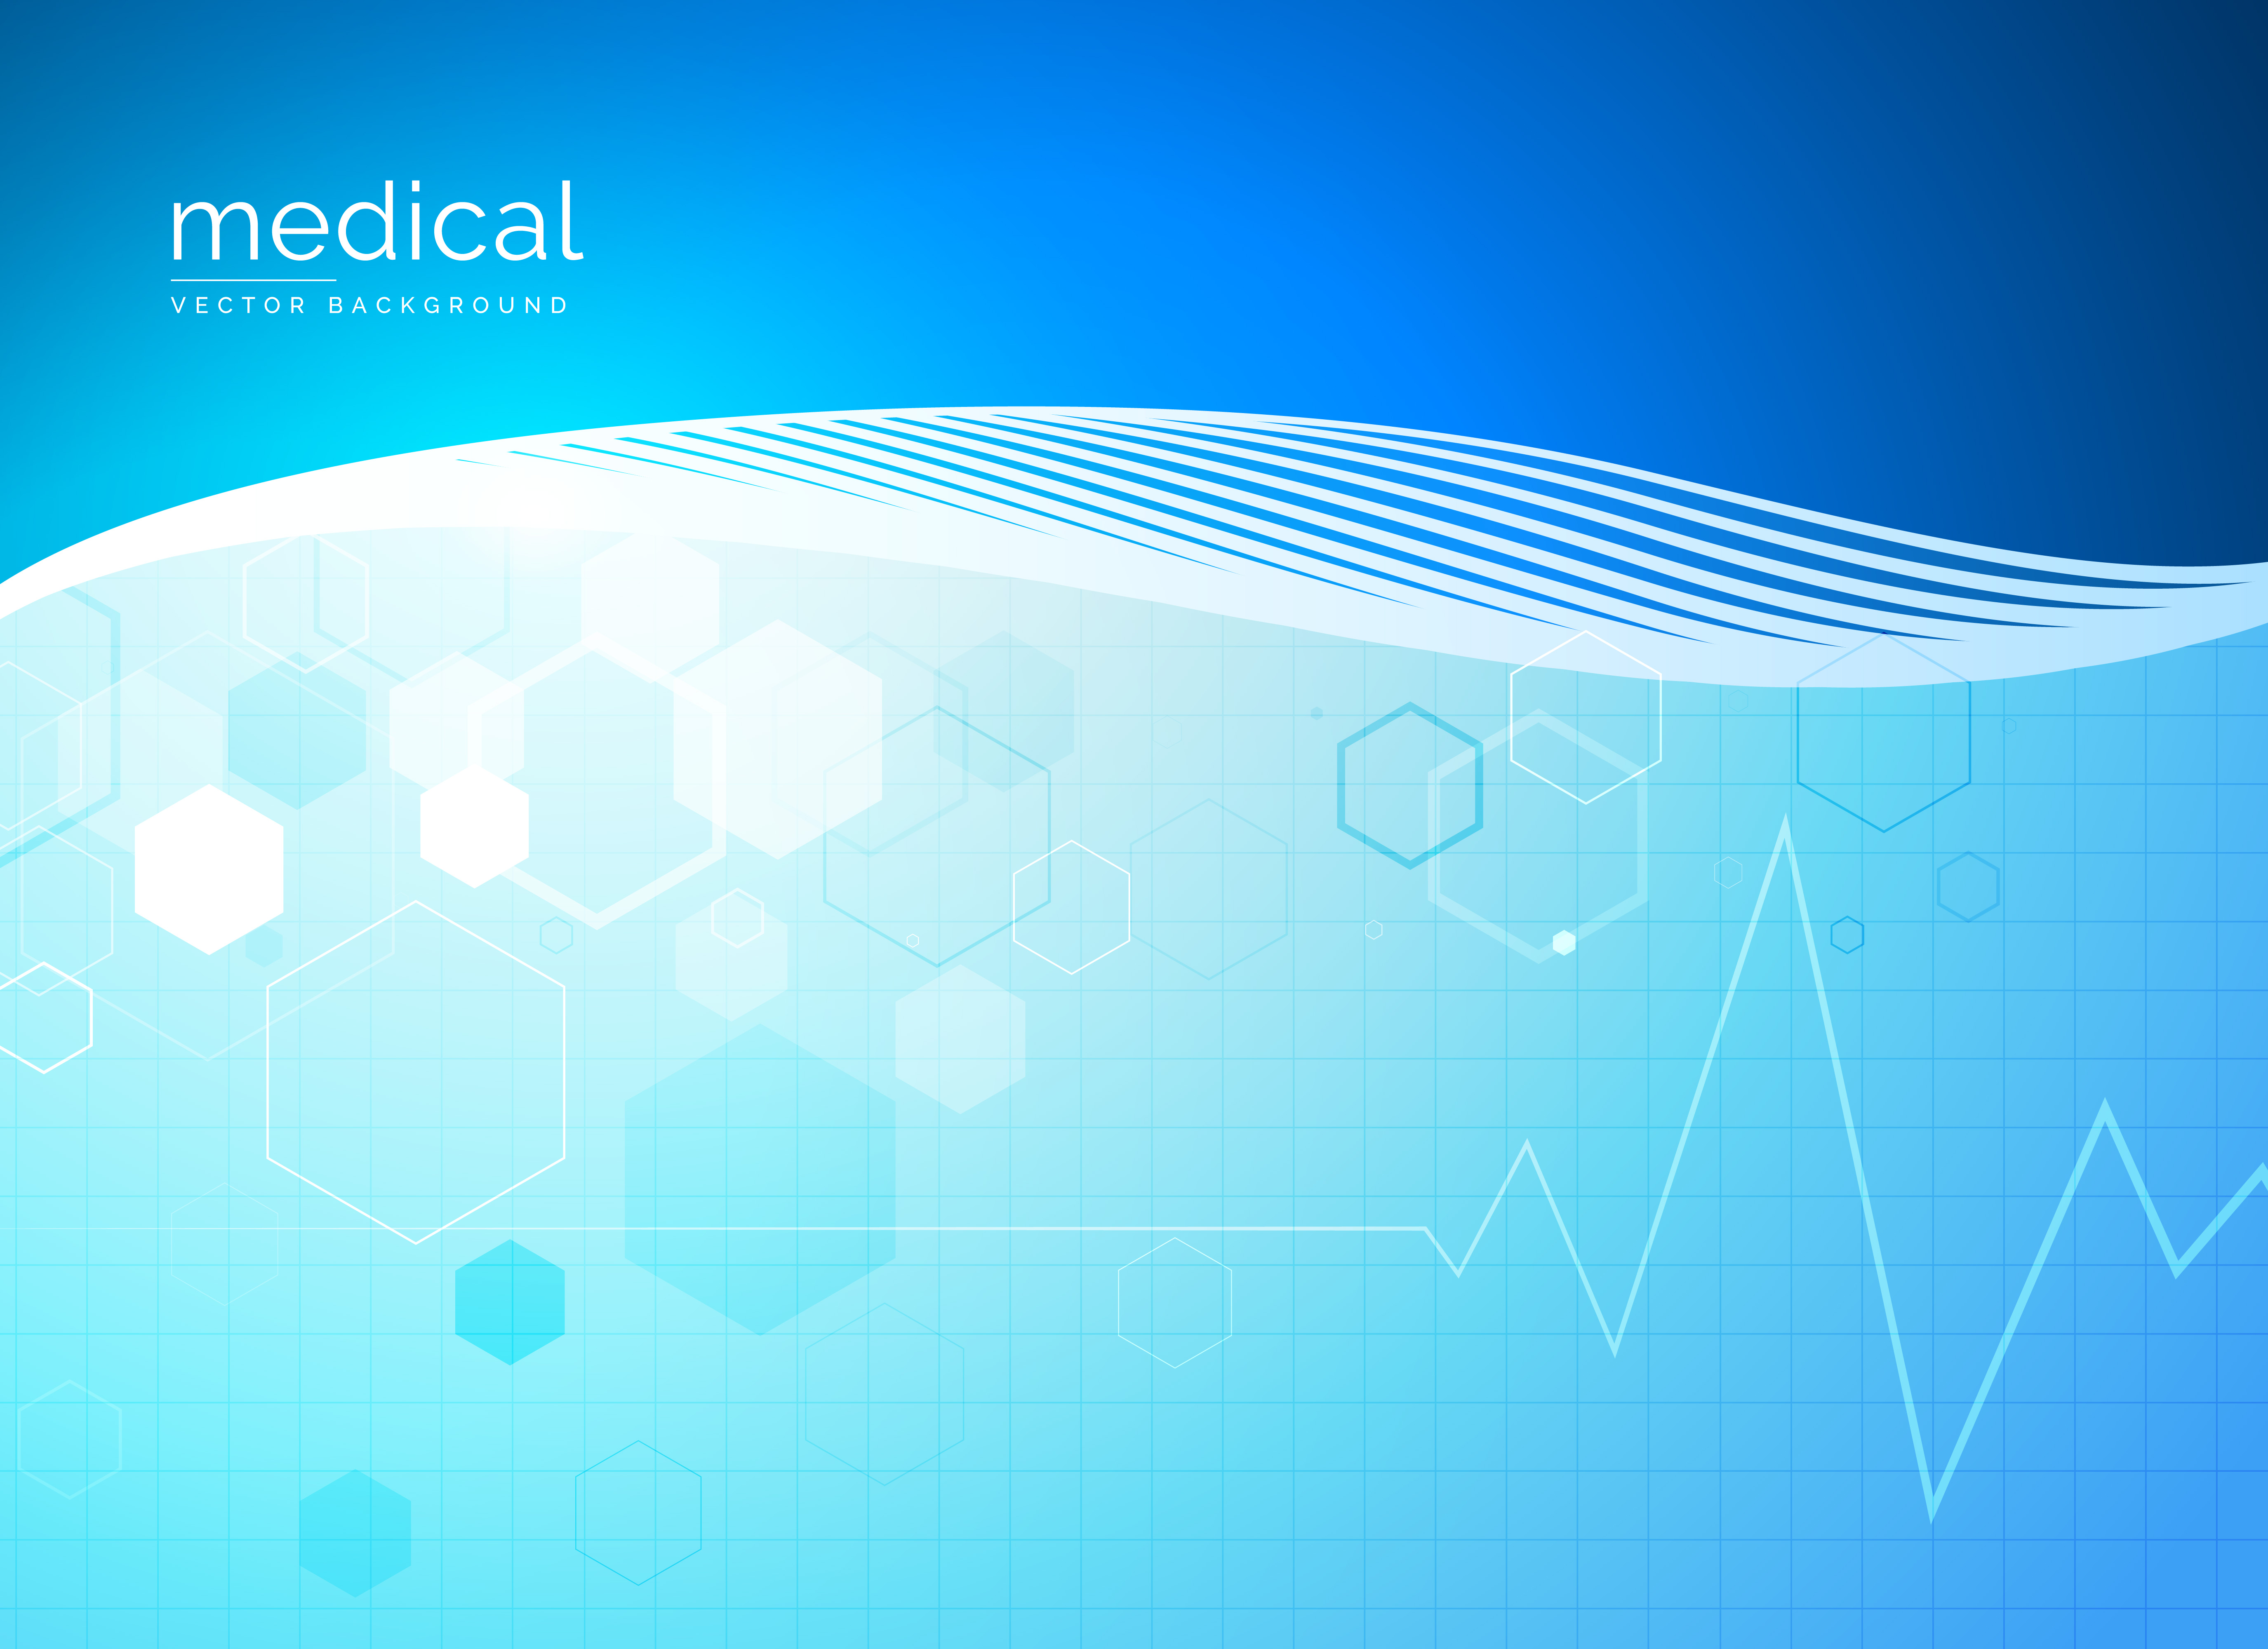 abstract-molecules-medical-background-design-vector.jpg